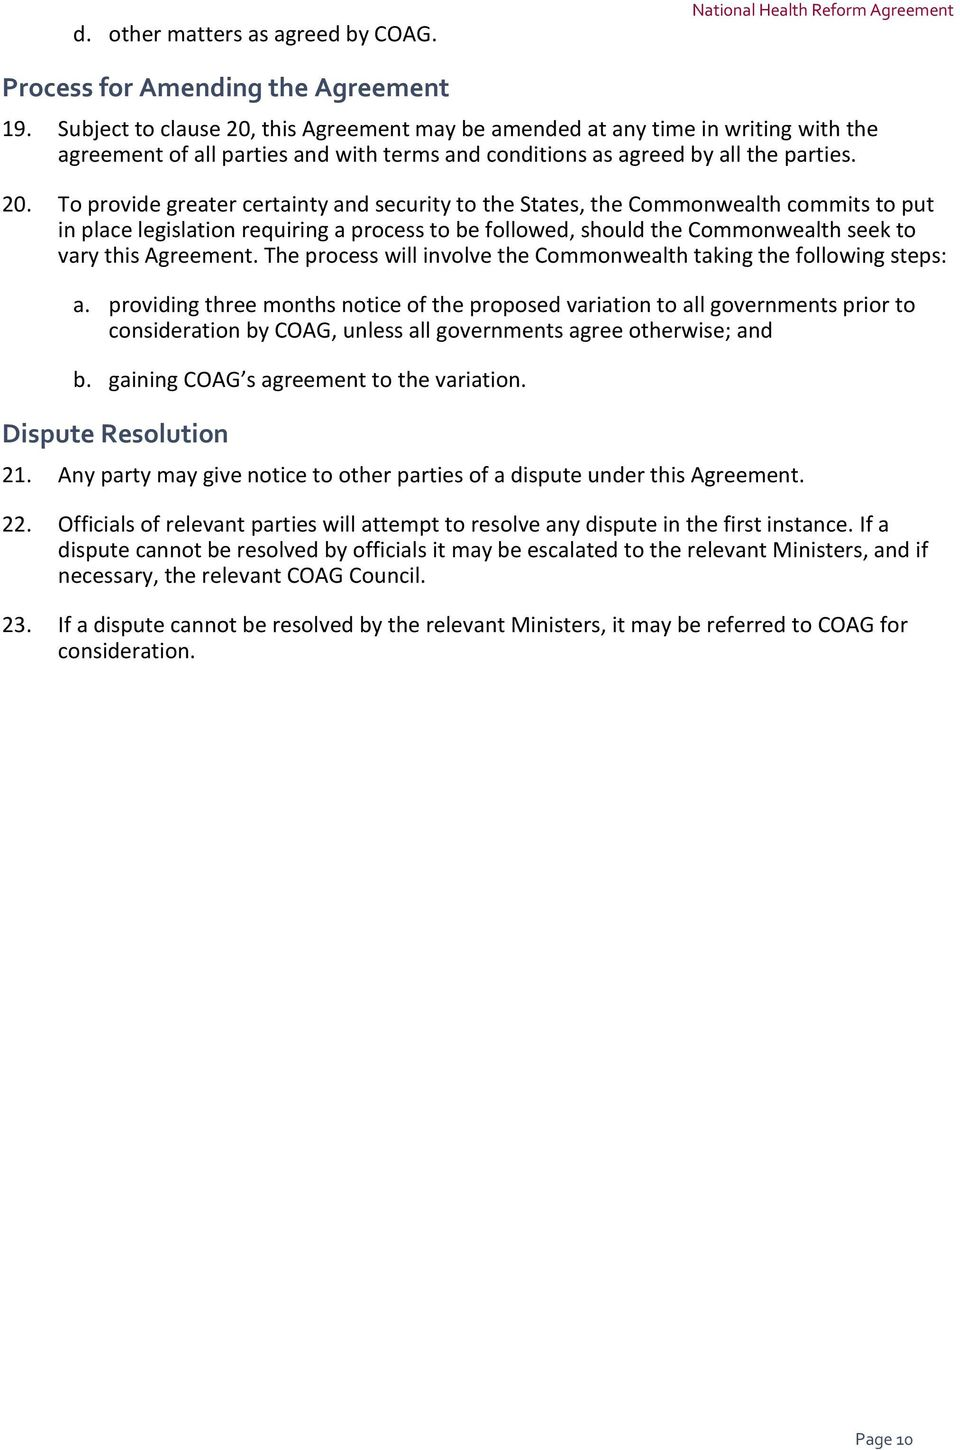 this Agreement may be amended at any time in writing with the agreement of all parties and with terms and conditions as agreed by all the parties. 20.